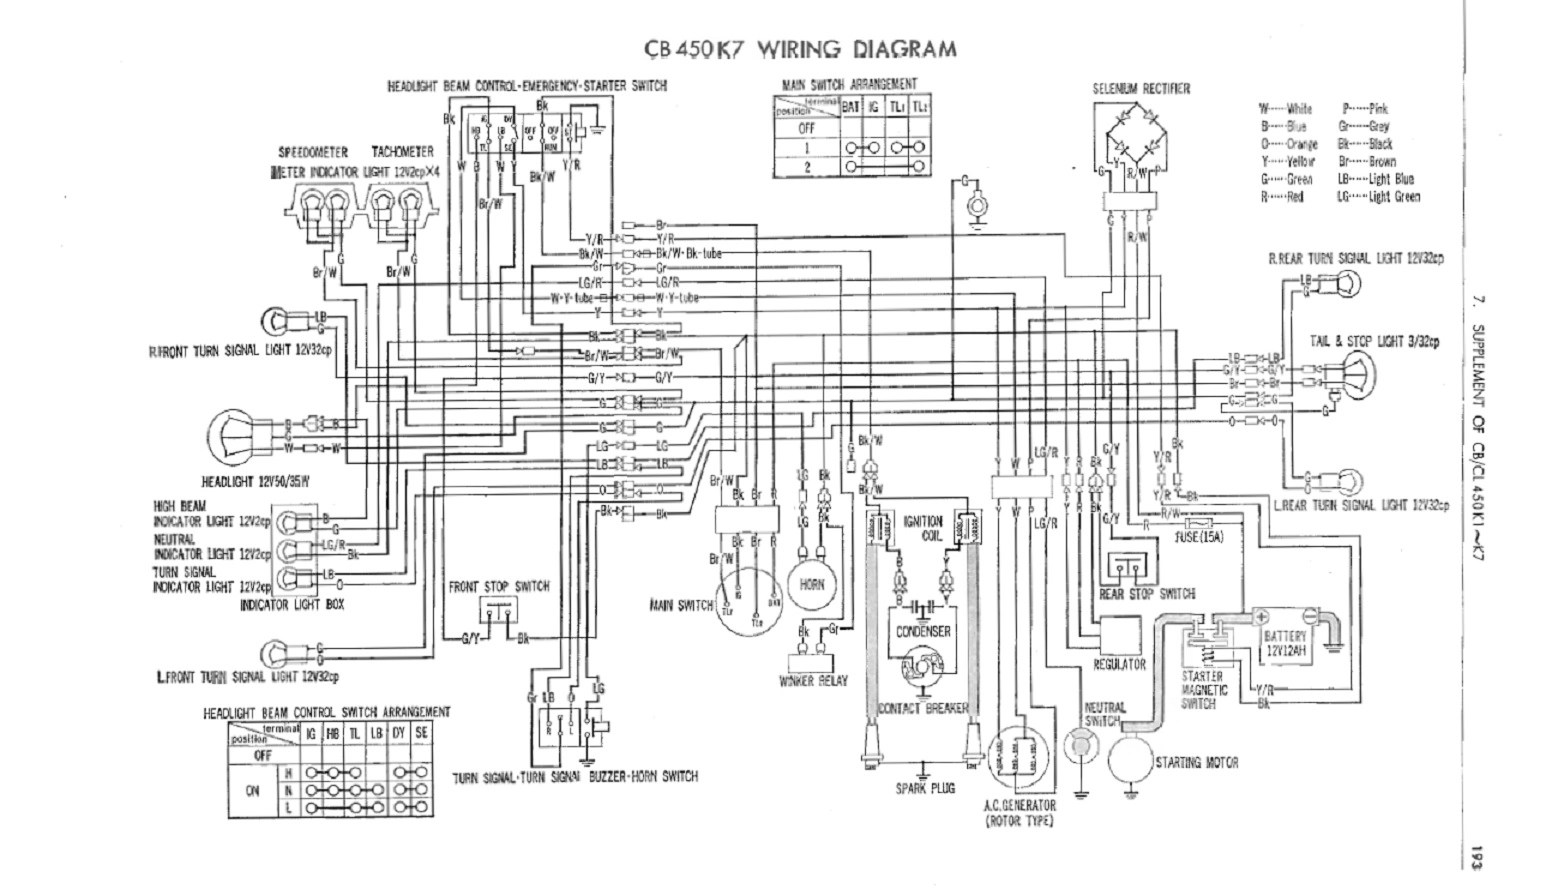 hight resolution of cb450 k5 wiring diagram wiring diagram yer honda cb 450 wiring diagram